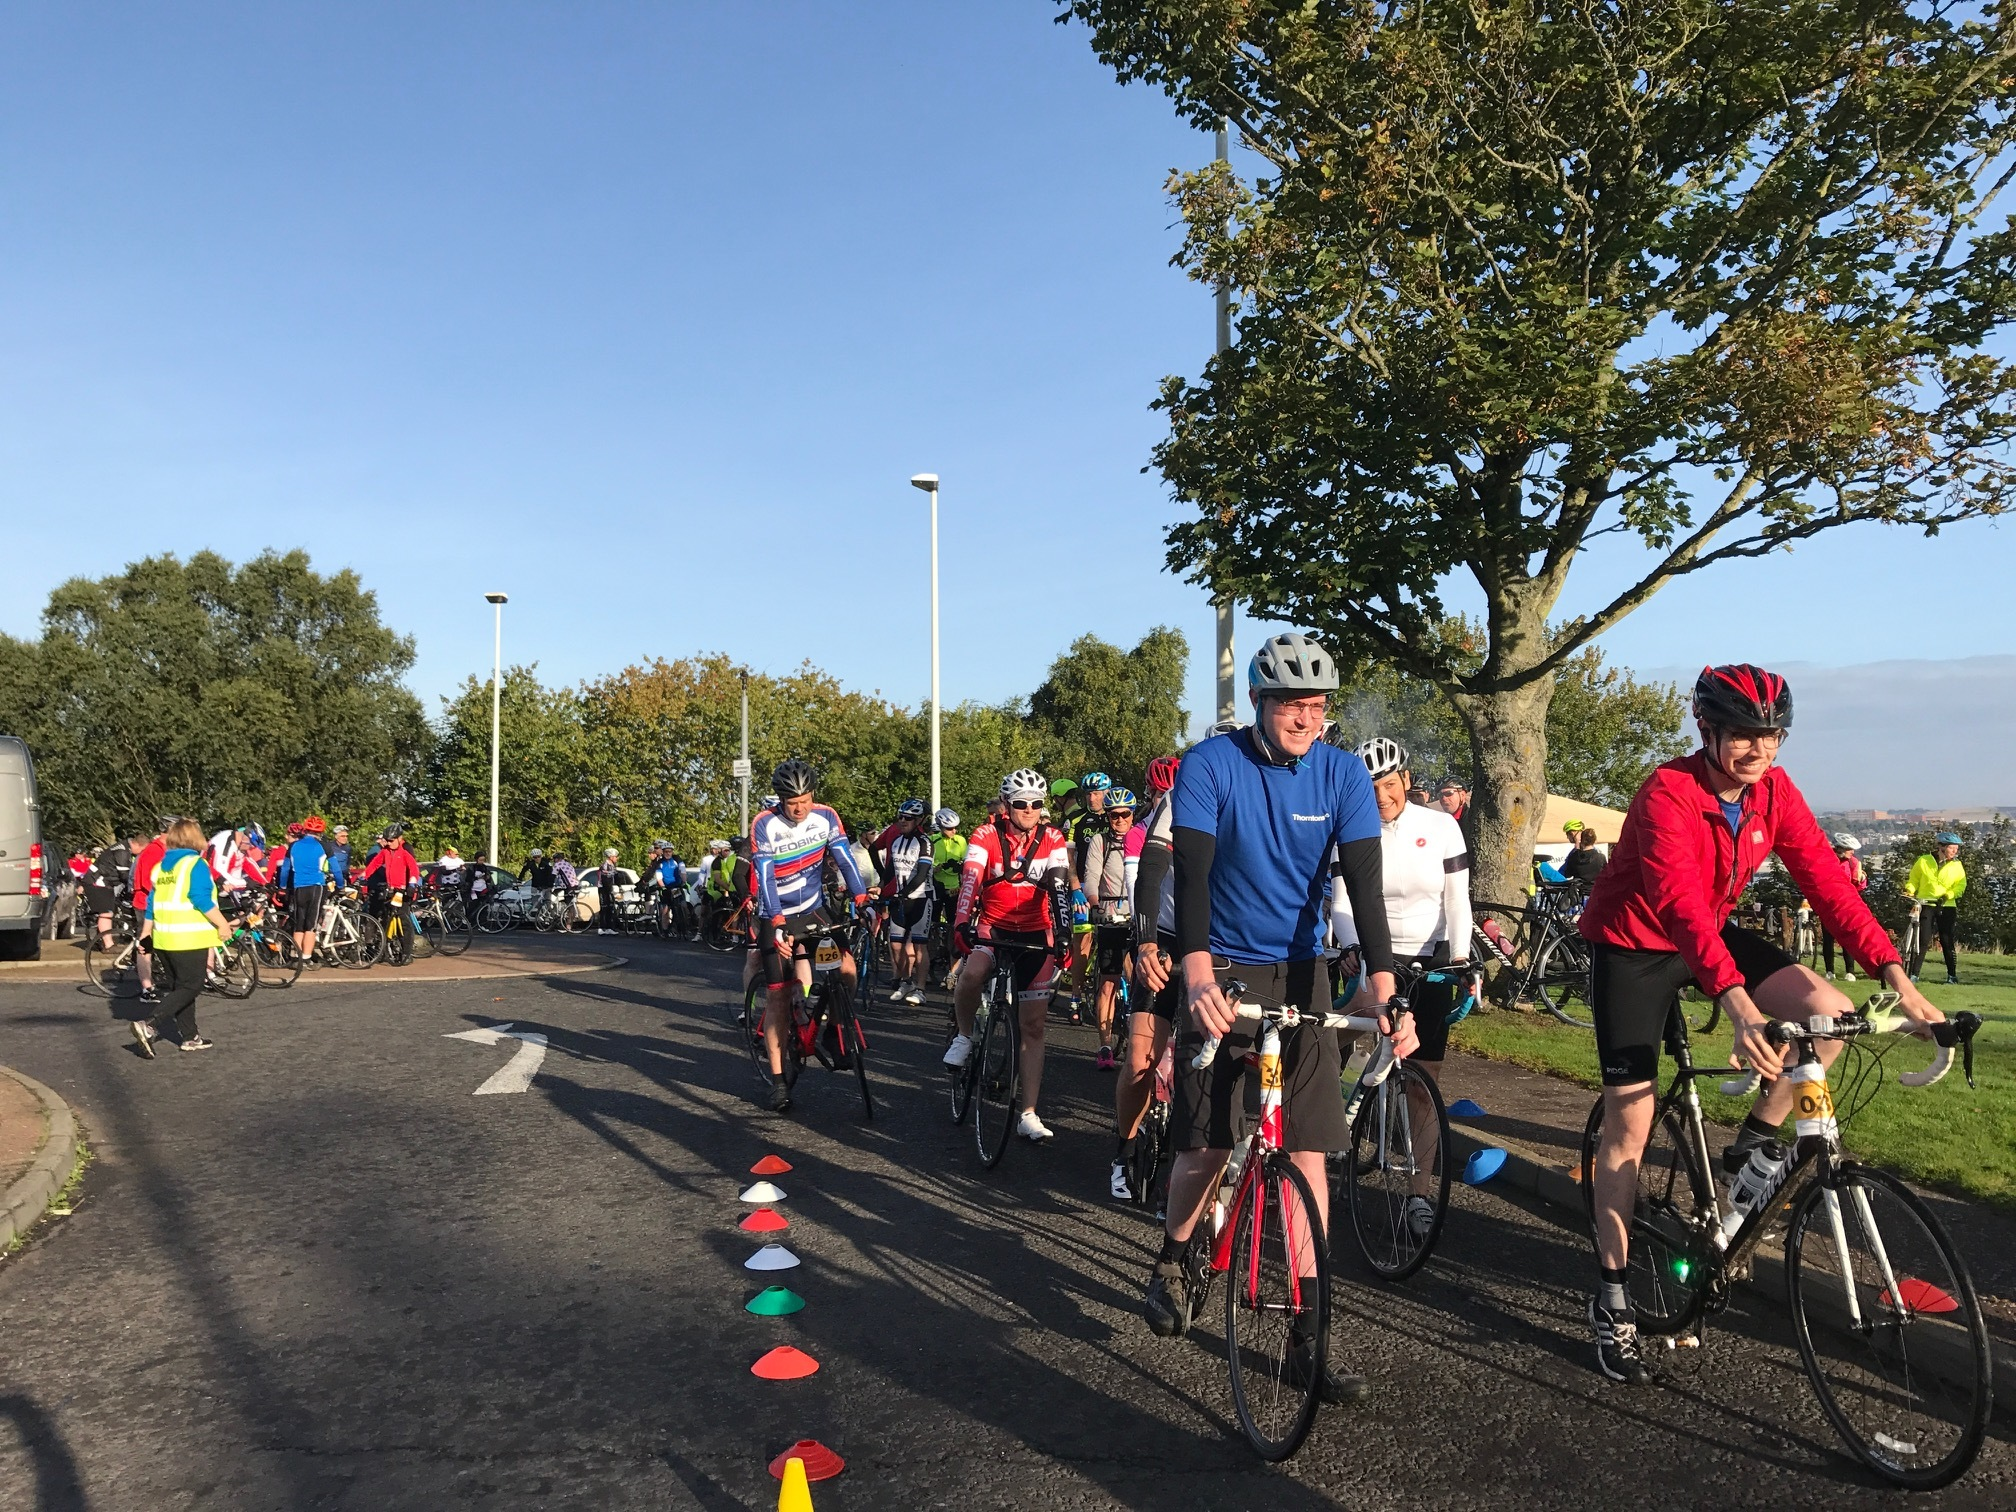 Competitors setting off from the Tay Road Bridge car park on Saturday morning.